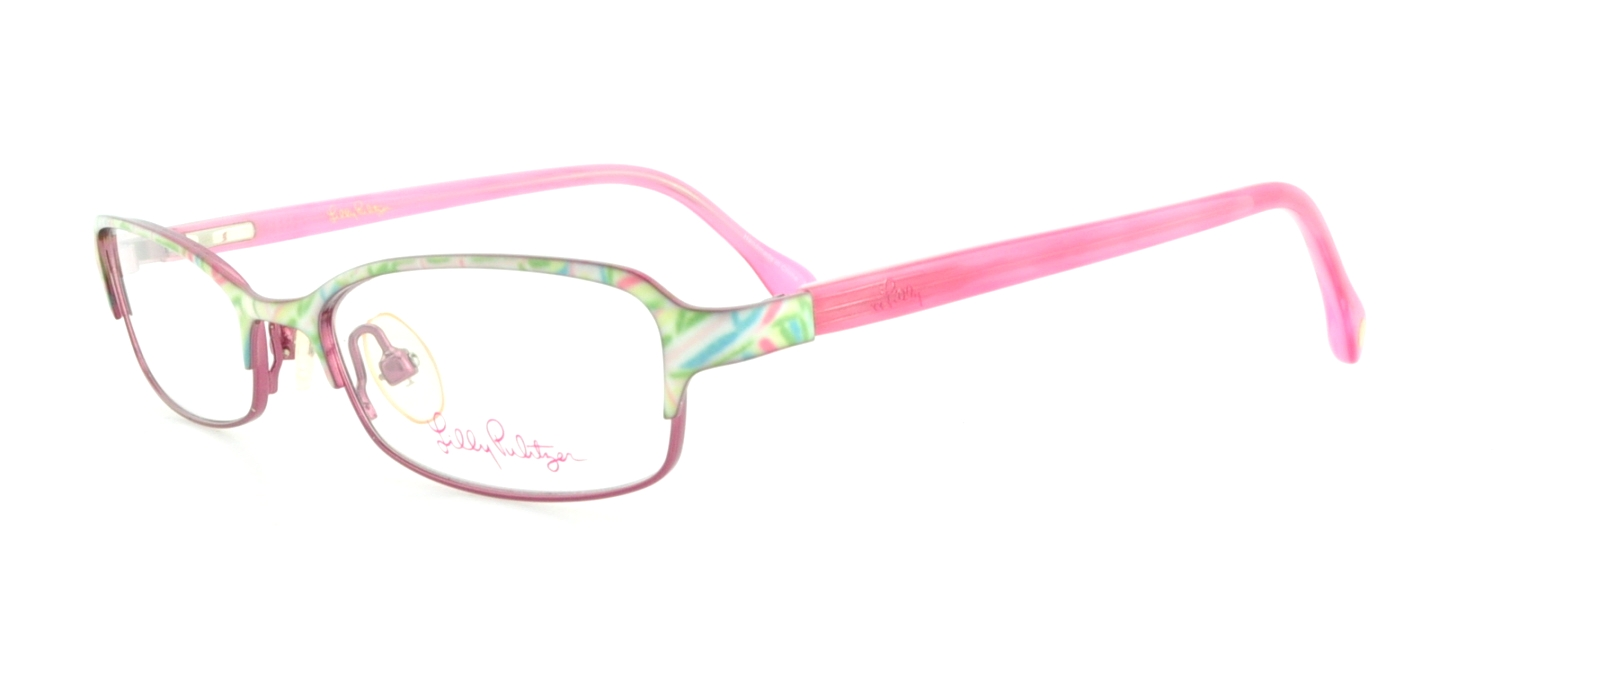 LILLY PULITZER Eyeglasses KIMMY Pink 47MM 715317813266 | eBay